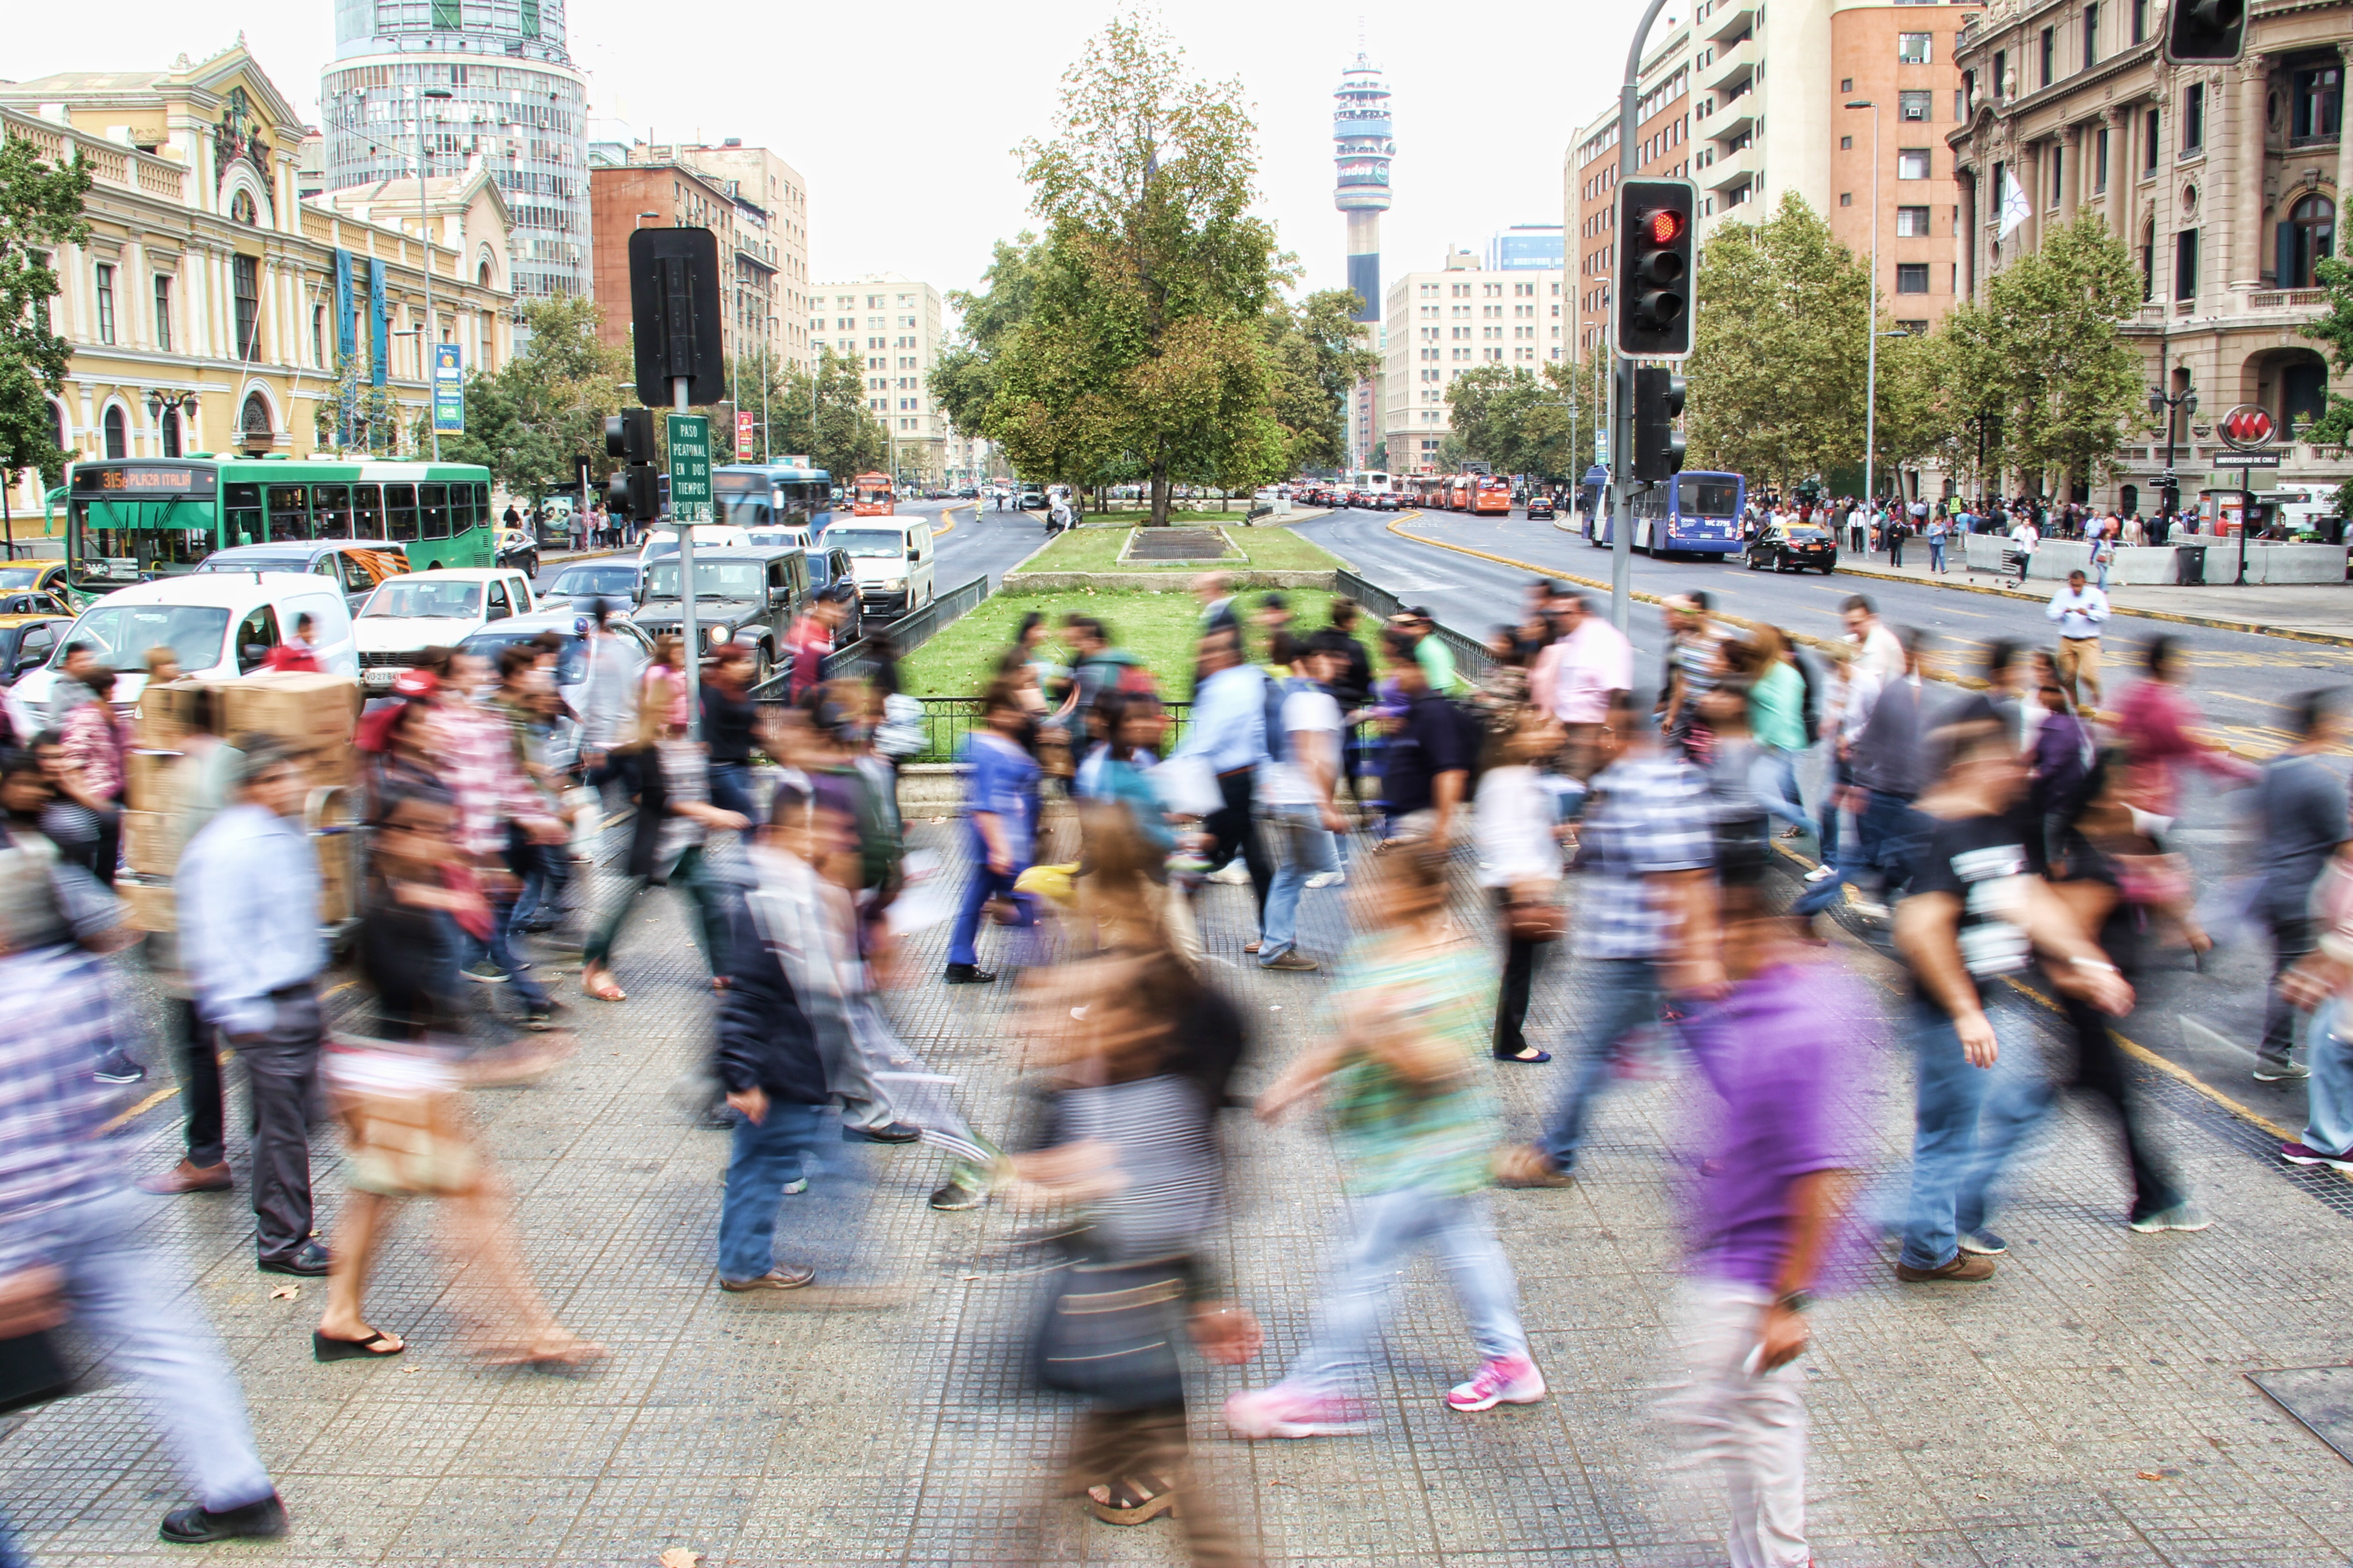 a blur of people rushing across a busy, city street